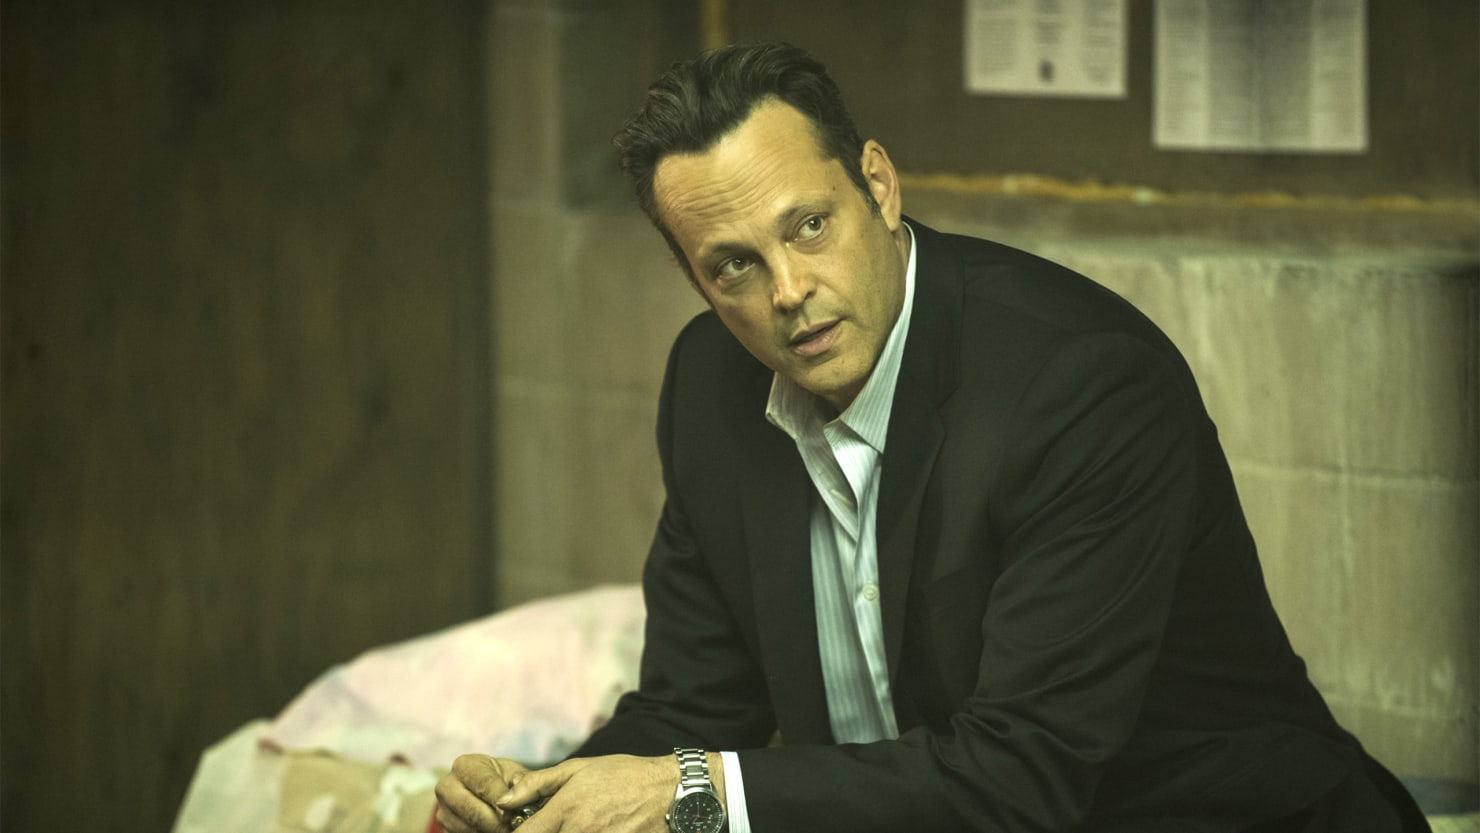 'True Detective' Season 2's Fatal Finale: Why Nic Pizzolatto's Show Will Be Hailed as a Cult Classic